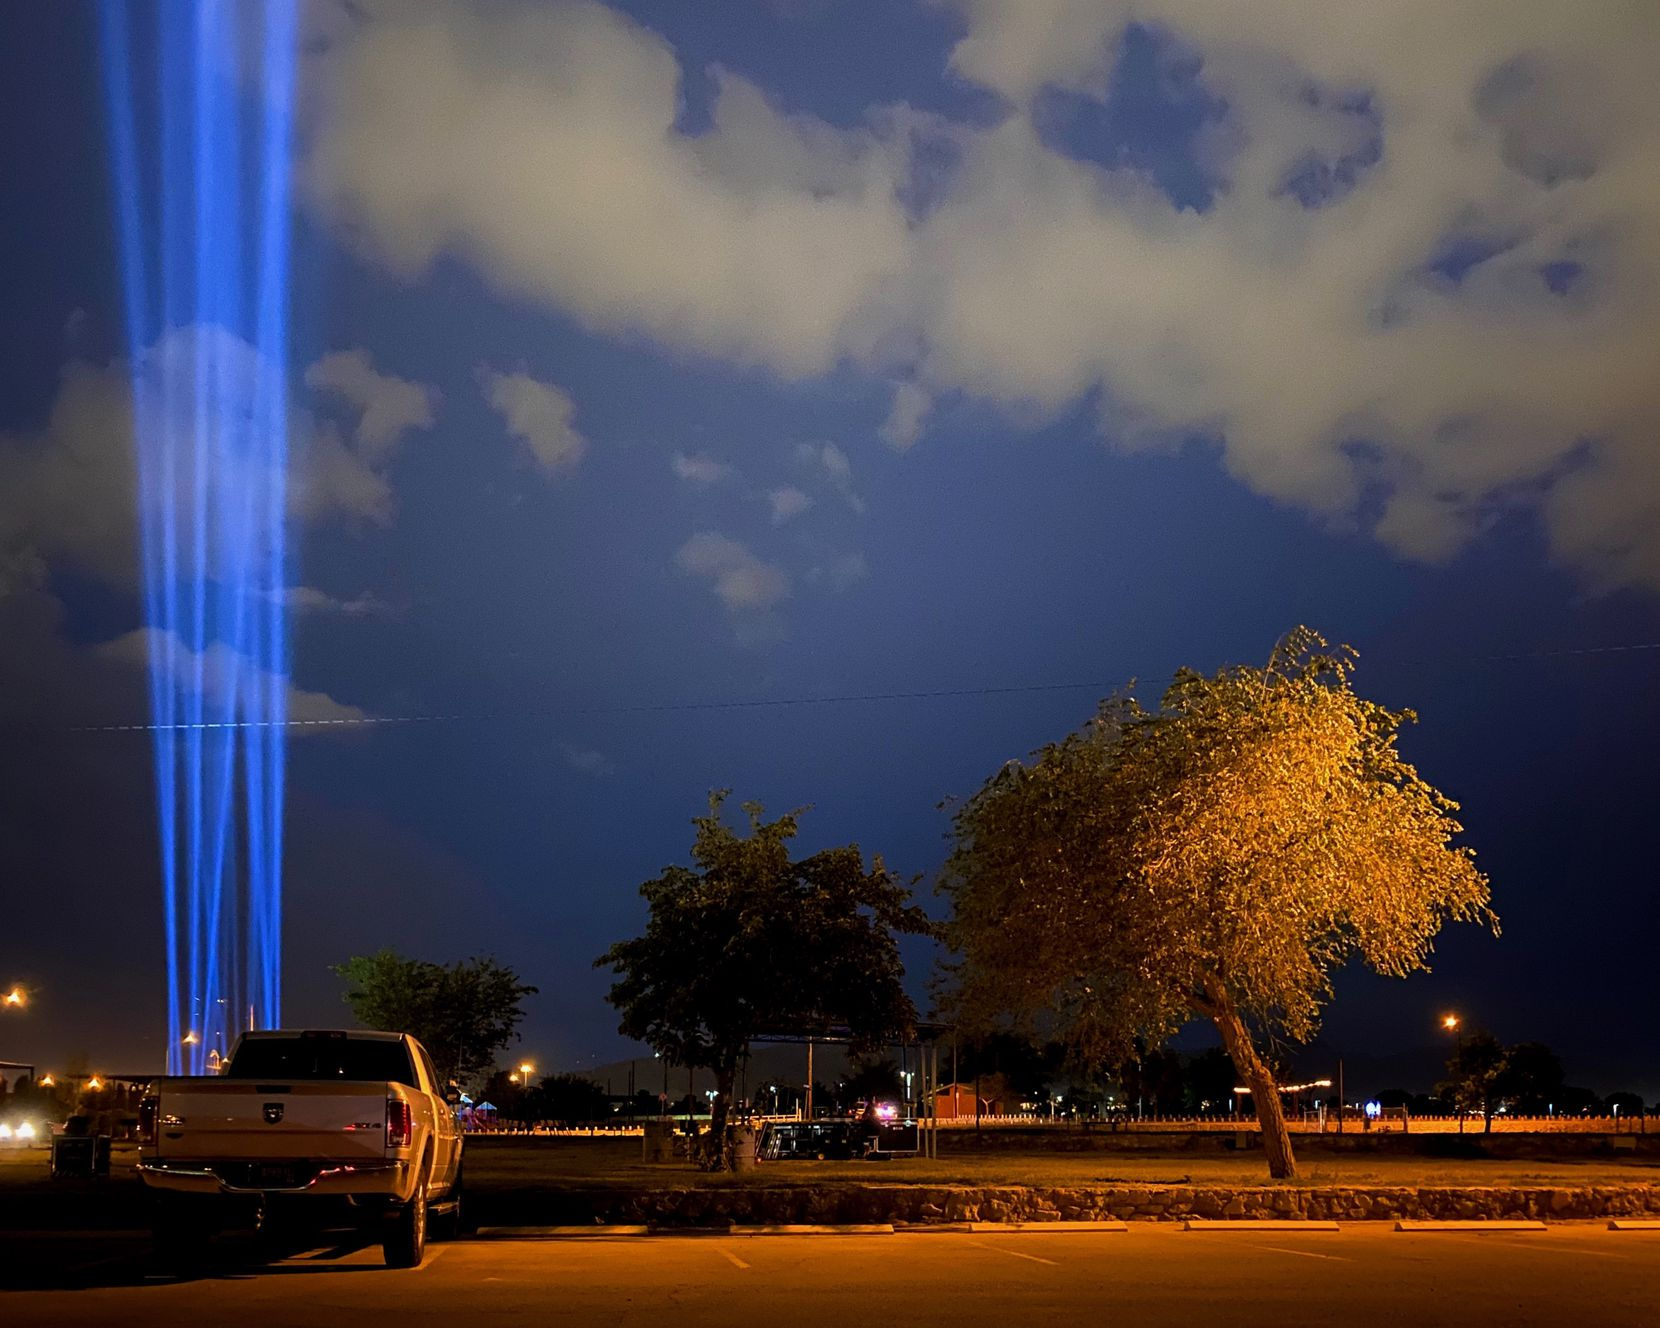 As part of the one-year memorial ceremonies, El Paso sent 23 beams of blue light shining into the night in memory of all those slain during the massacre a year earlier.